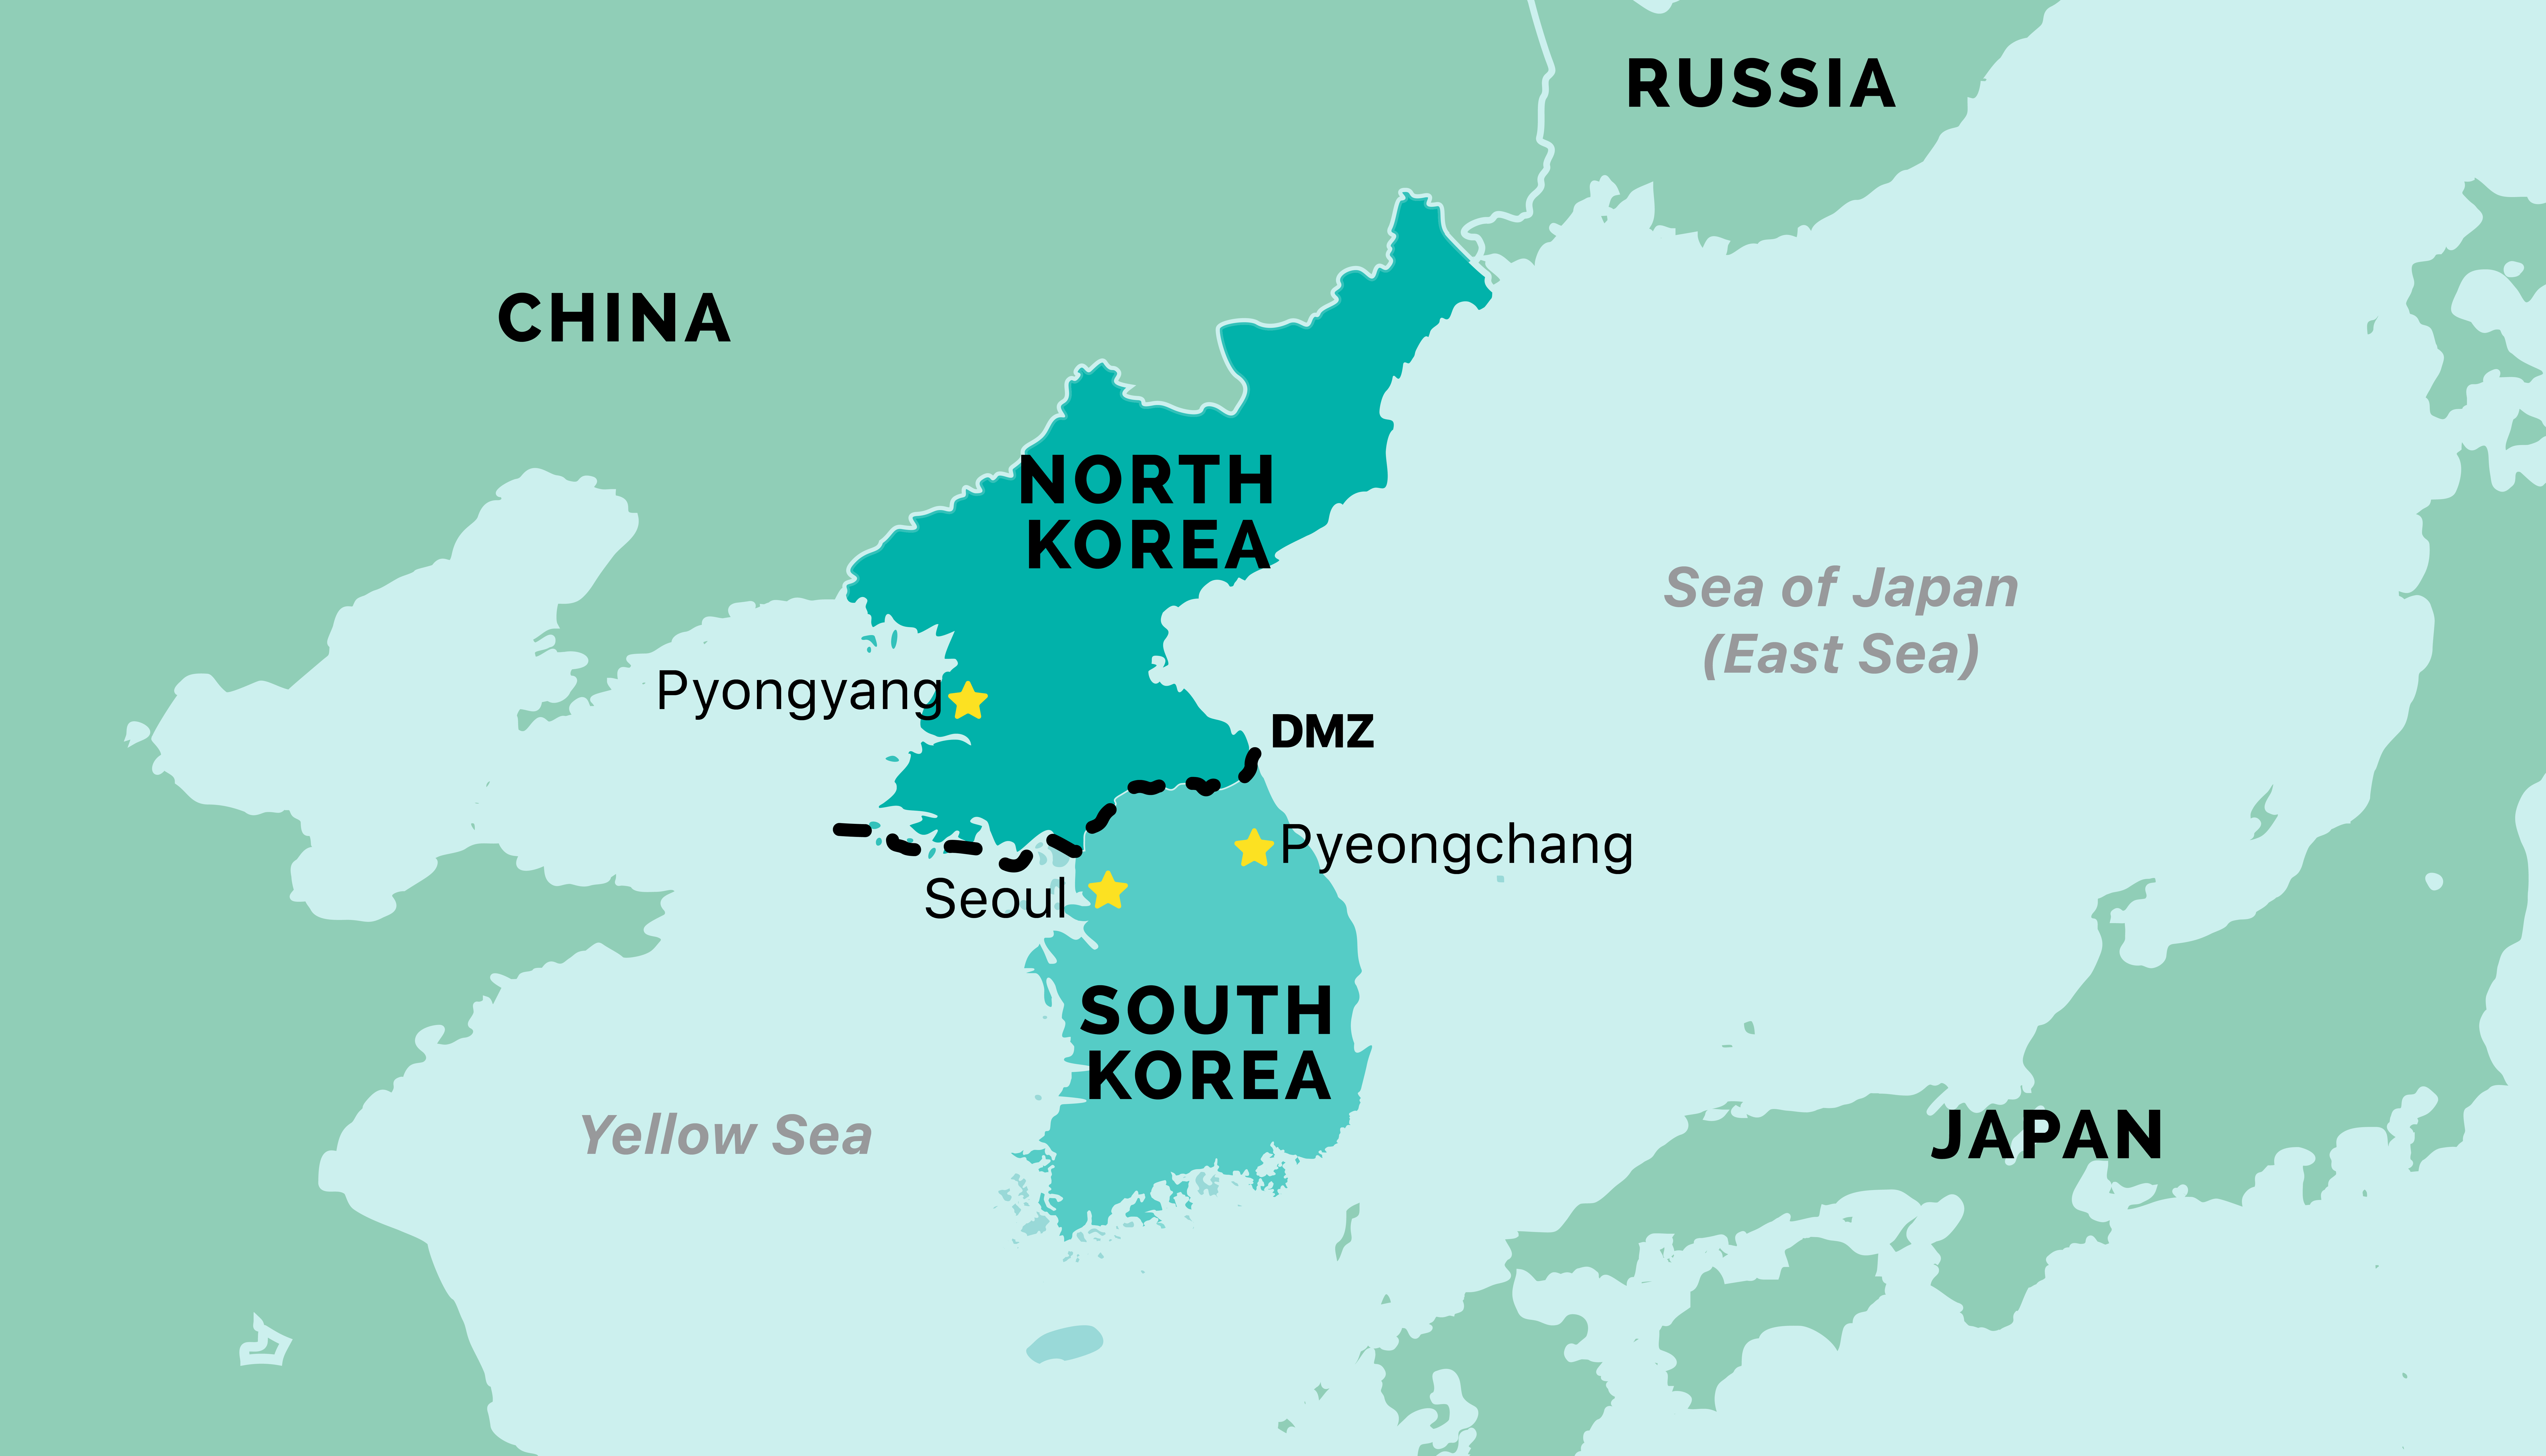 North Korea's history and its nuclear weapons | Skimm News on south korea physical map, south korea climate map, united states of america, korean war, kim jong-nam, russia north korea map, north korea china map, south africa map, qinling shandi mountains china map, united kingdom, north korea population density map, south korea country map, south korea on a map, denmark map, pyongyang north korea map, kim jong-il, roman empire map, north korea on map, north korea satellite map, world map, kim il-sung, south korea road map, kim jong-un, south korea capital map, south korea major cities map, north korea capital map, asia map,